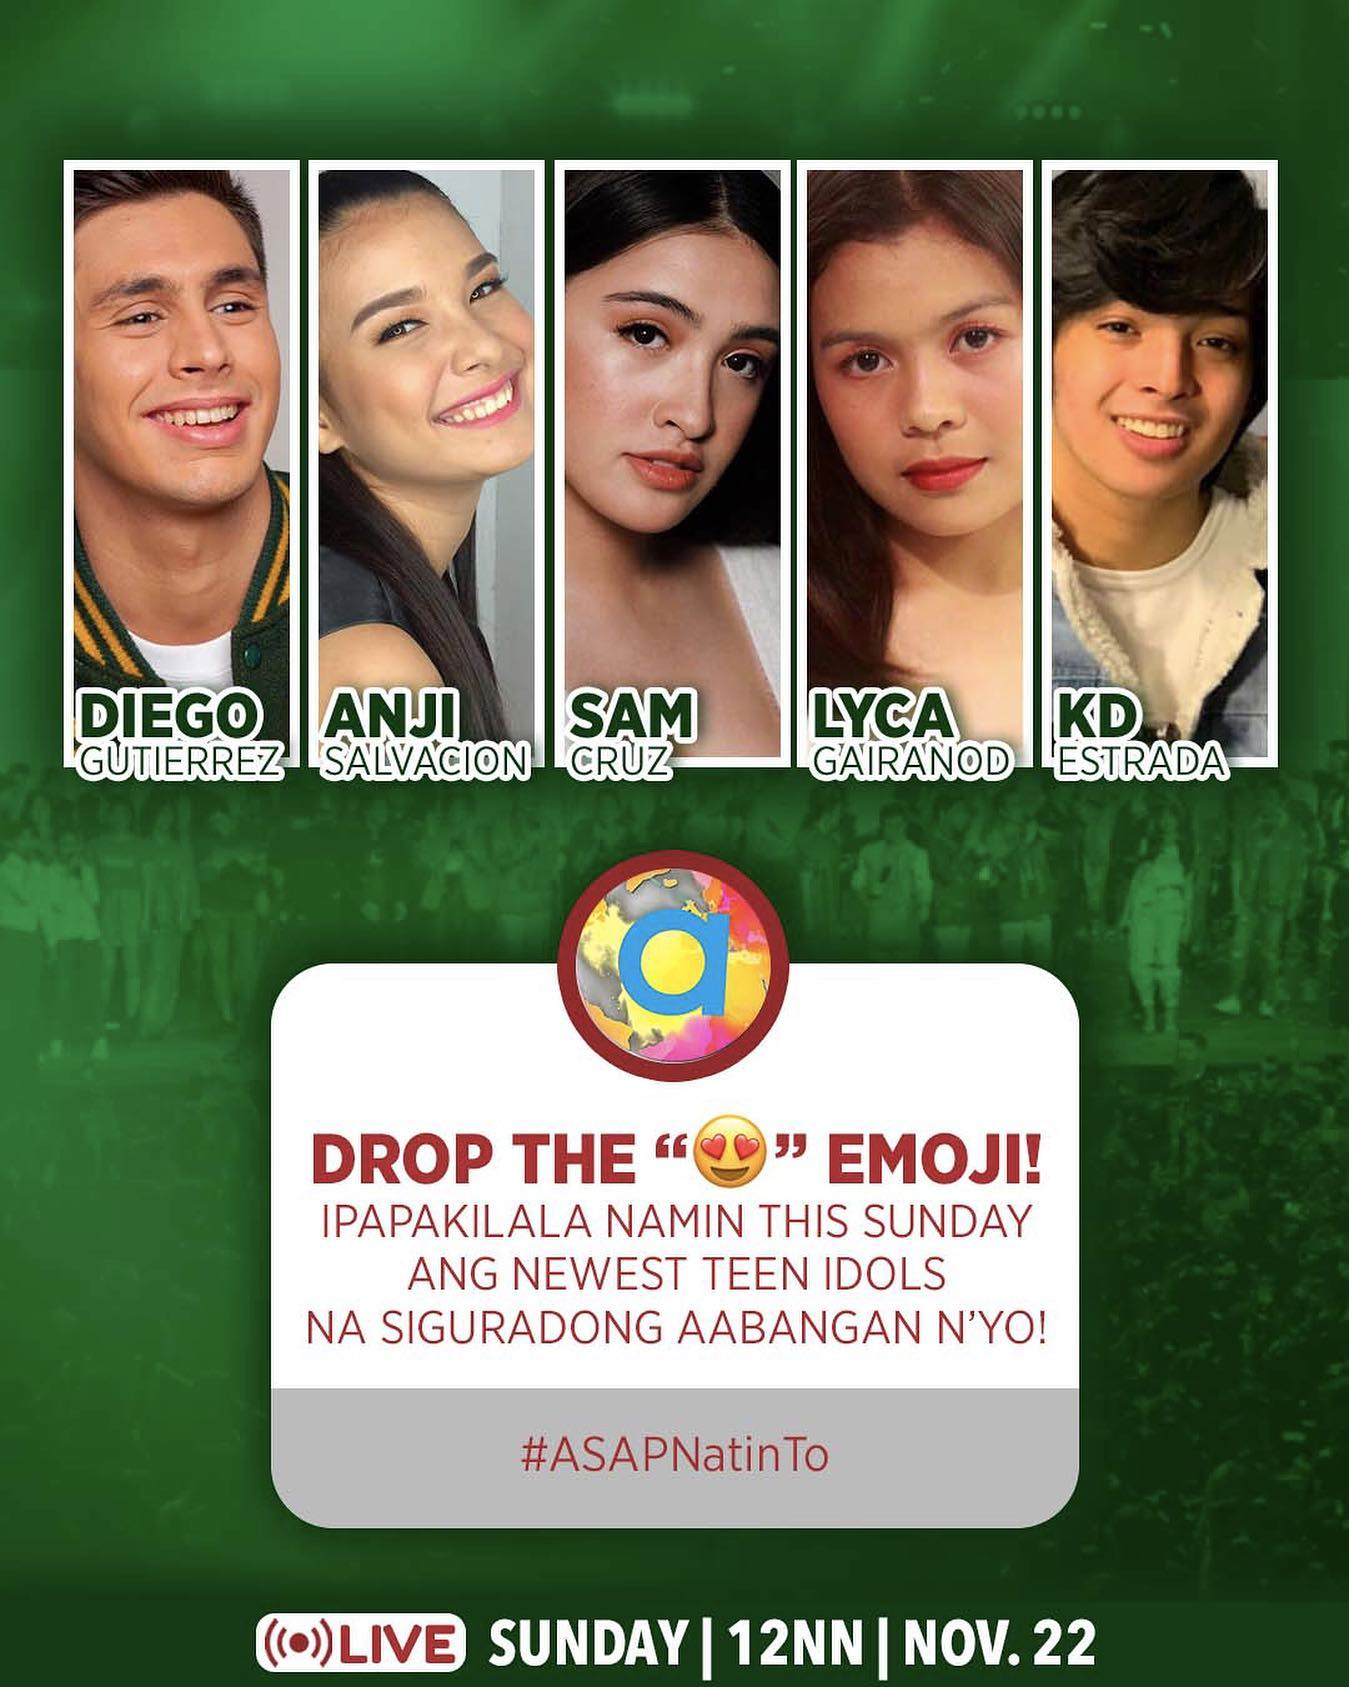 ASAP Natin To spreads the positivity with world class performances this Sunday 4